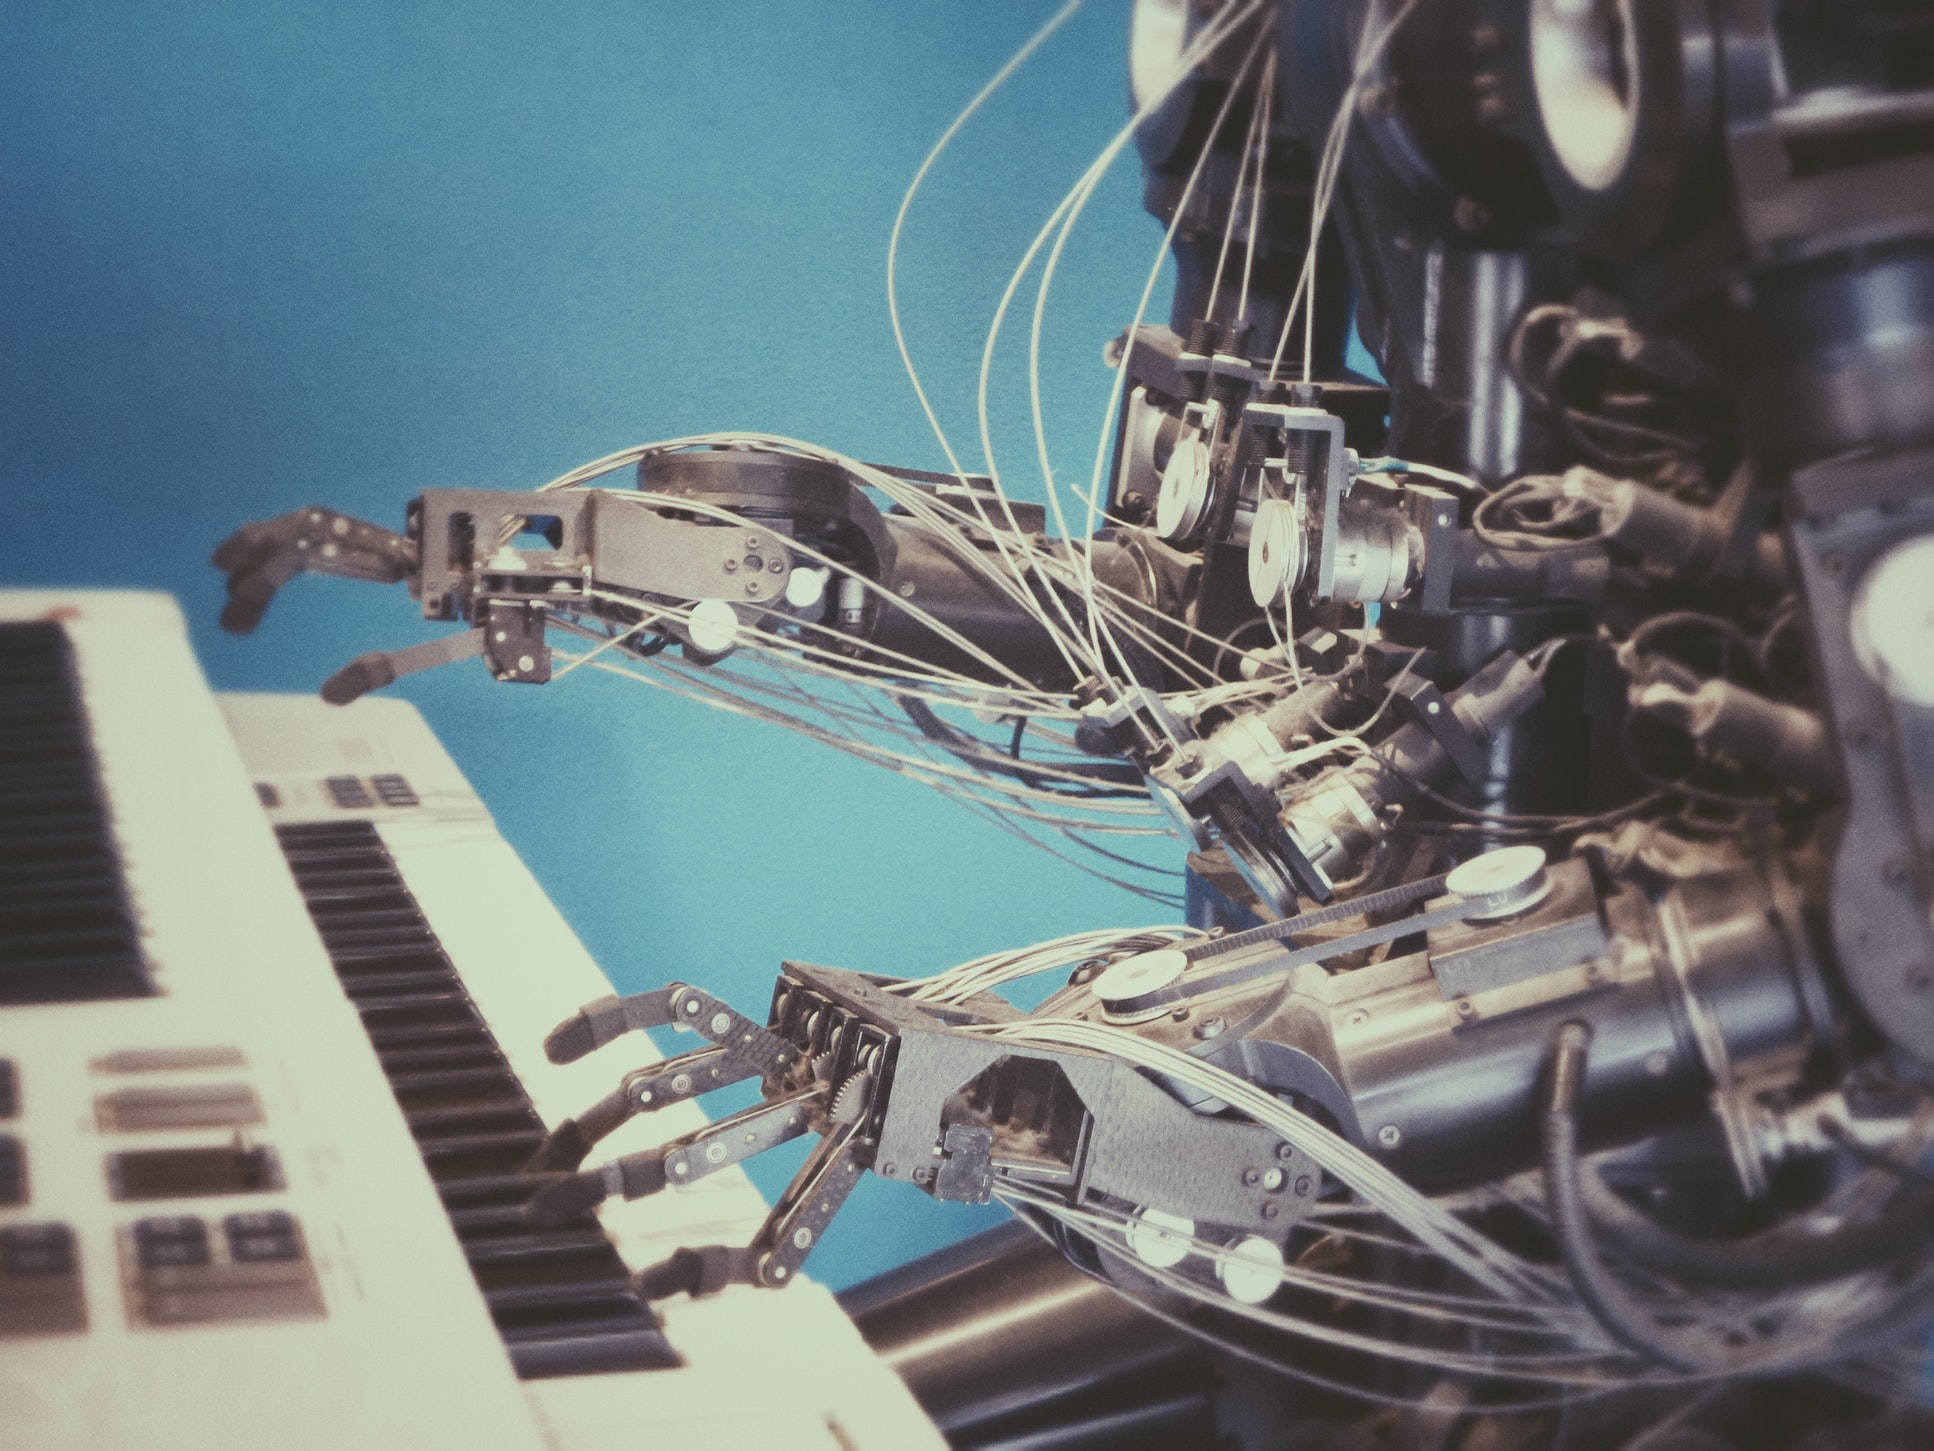 Robot Playing Piano - RPA is VIsa Handling Services